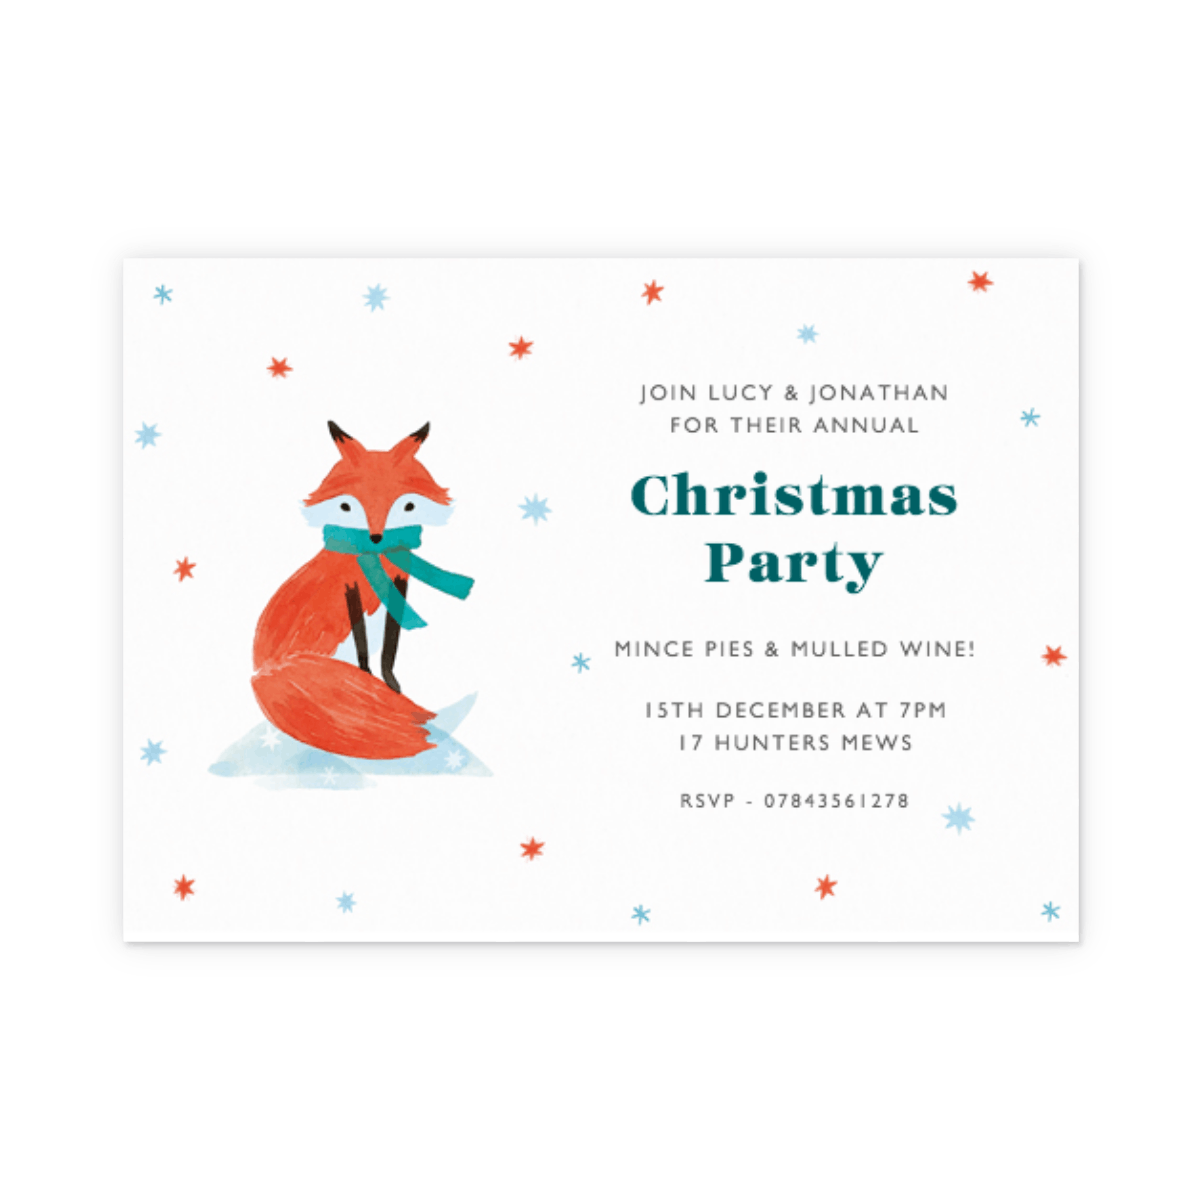 Https%3a%2f%2fwww.papier.com%2fproduct image%2f41754%2f10%2fchristmas fox 10639 front 1532099770.png?ixlib=rb 1.1